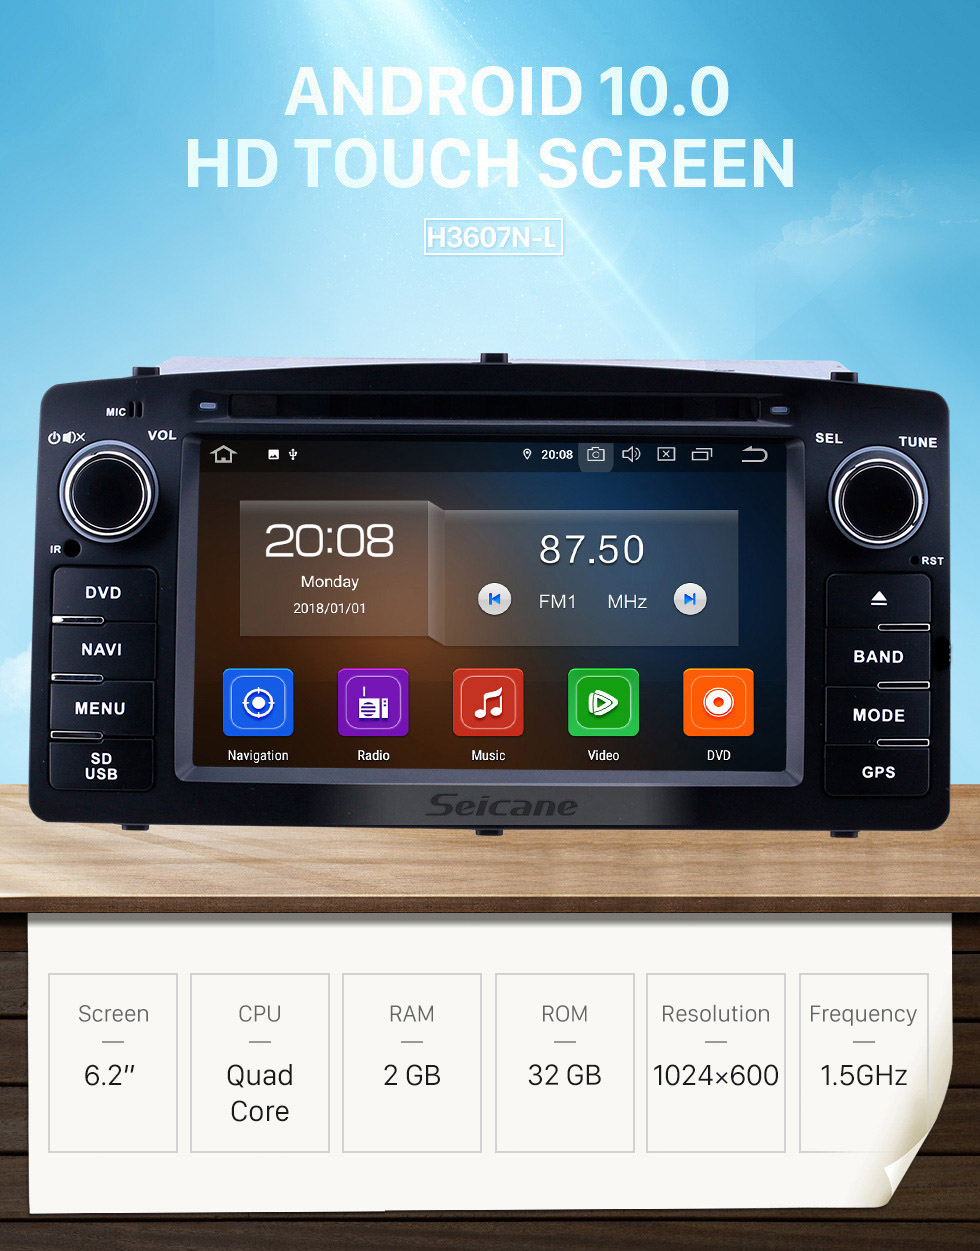 Seicane 6.2 inch Android 10.0 GPS Navigation Radio for 2003-2012 Toyota Corolla E120 BYD F3 with HD Touchscreen Carplay Bluetooth support TPMS